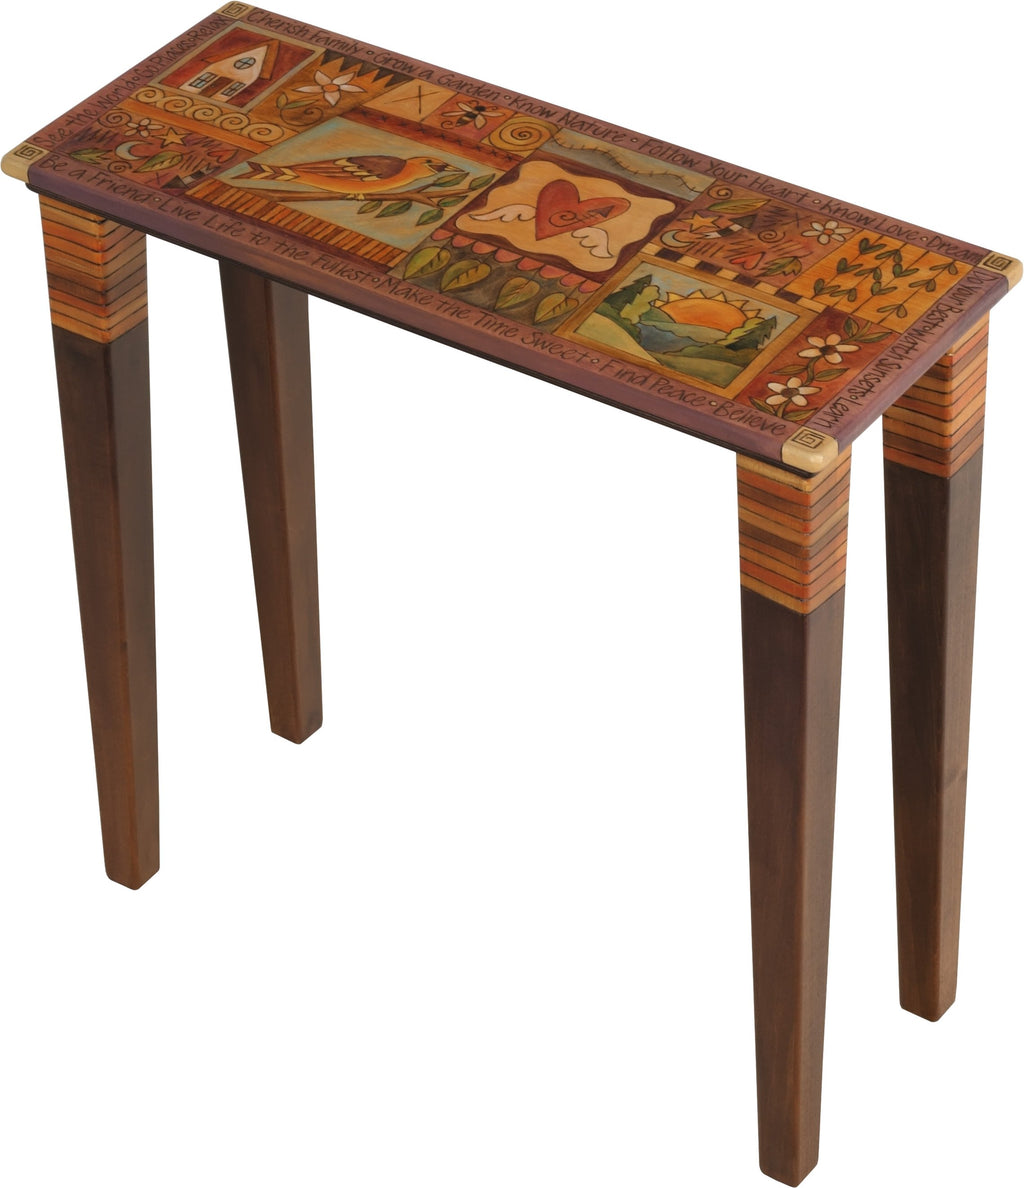 Sticks handmade console table with colorful life icons in neutral palette